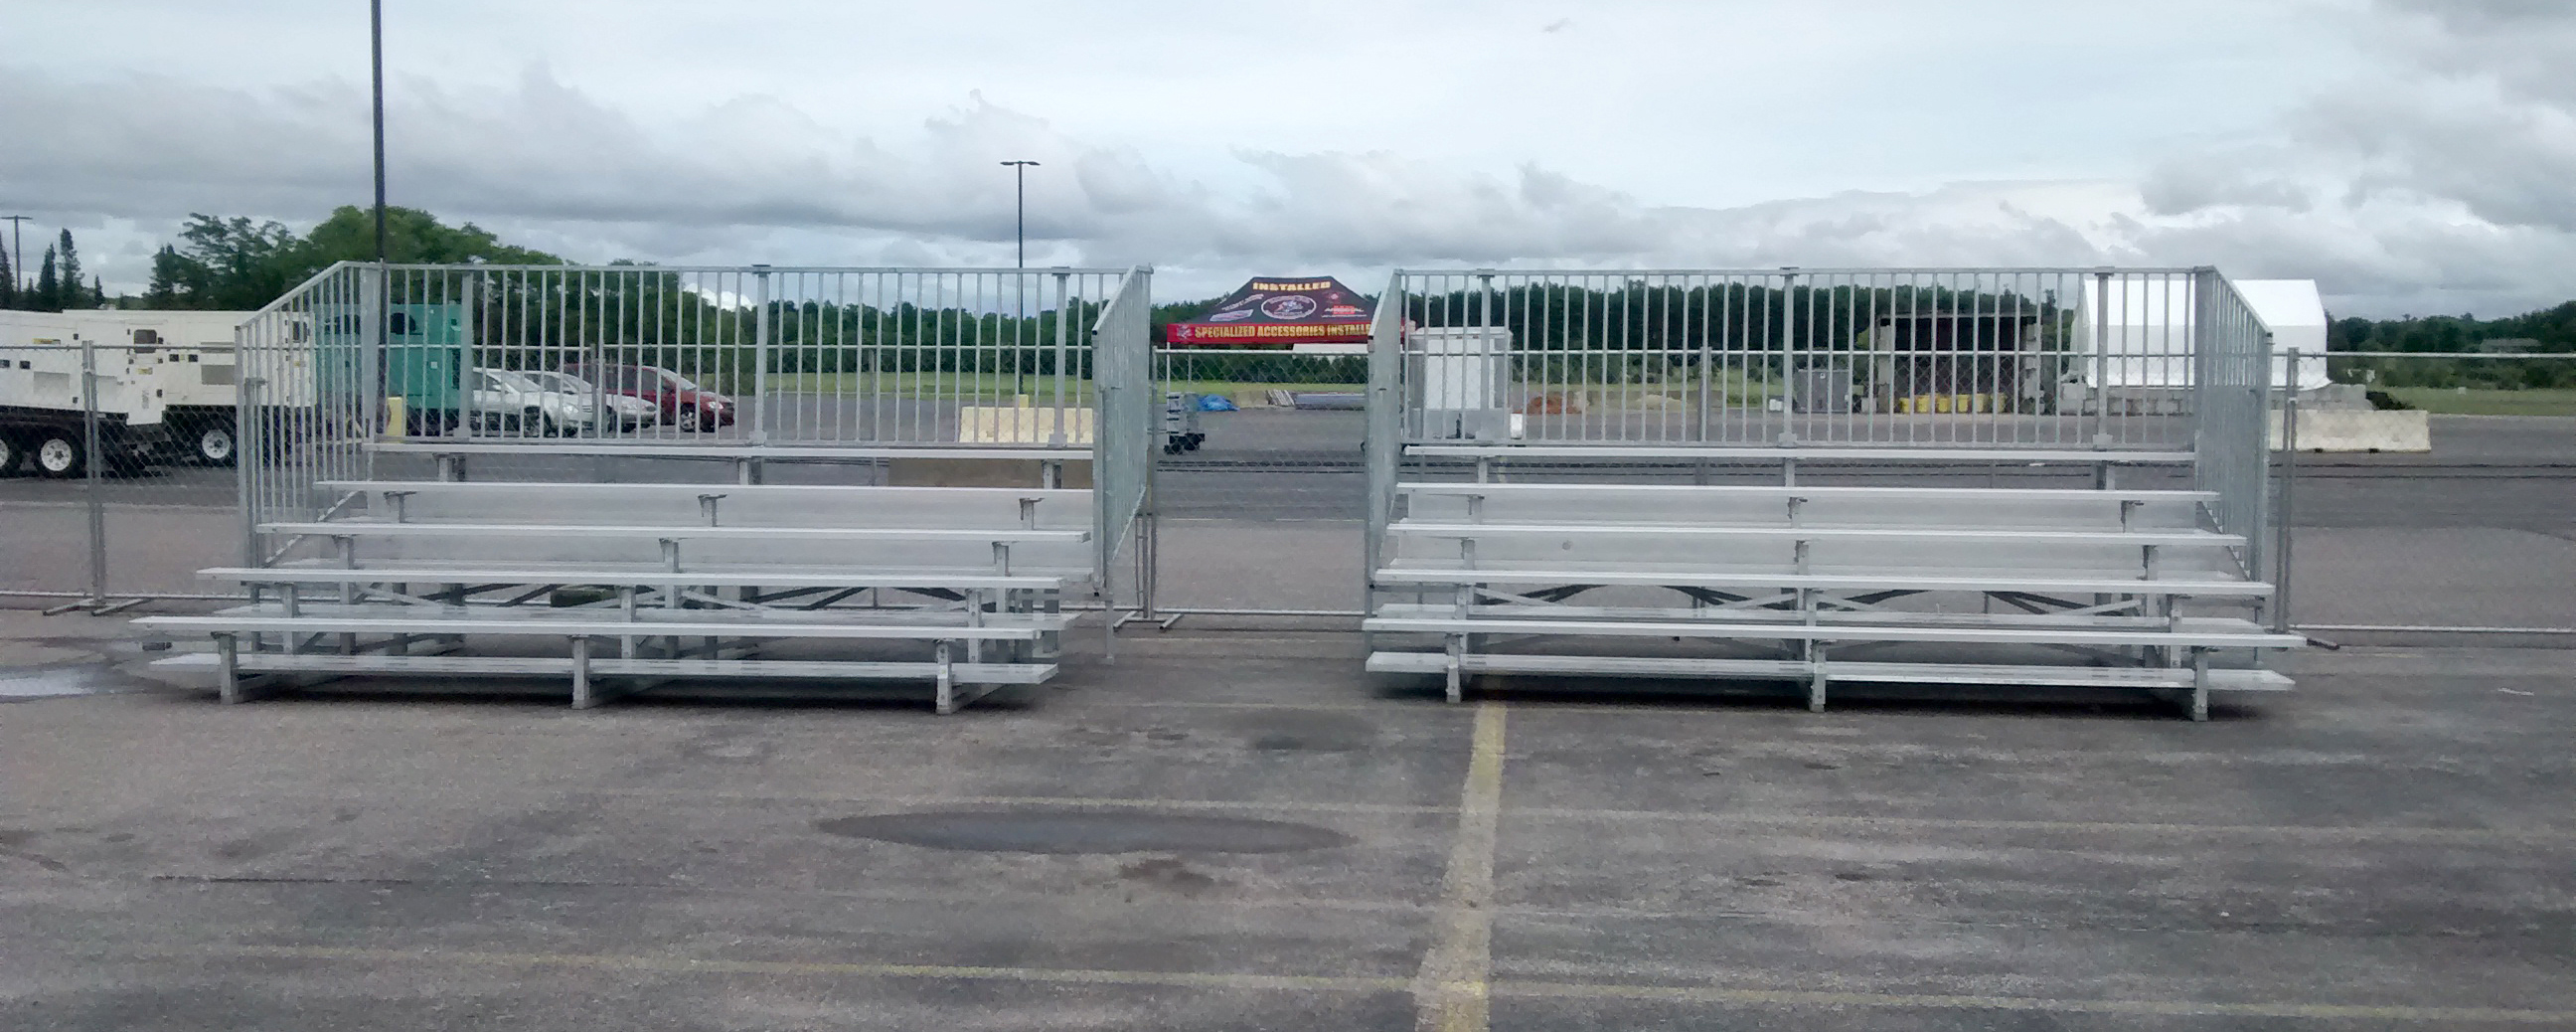 5 Row Quot Quick Seat Quot Gym Bleacher Rental With Railing In Iowa